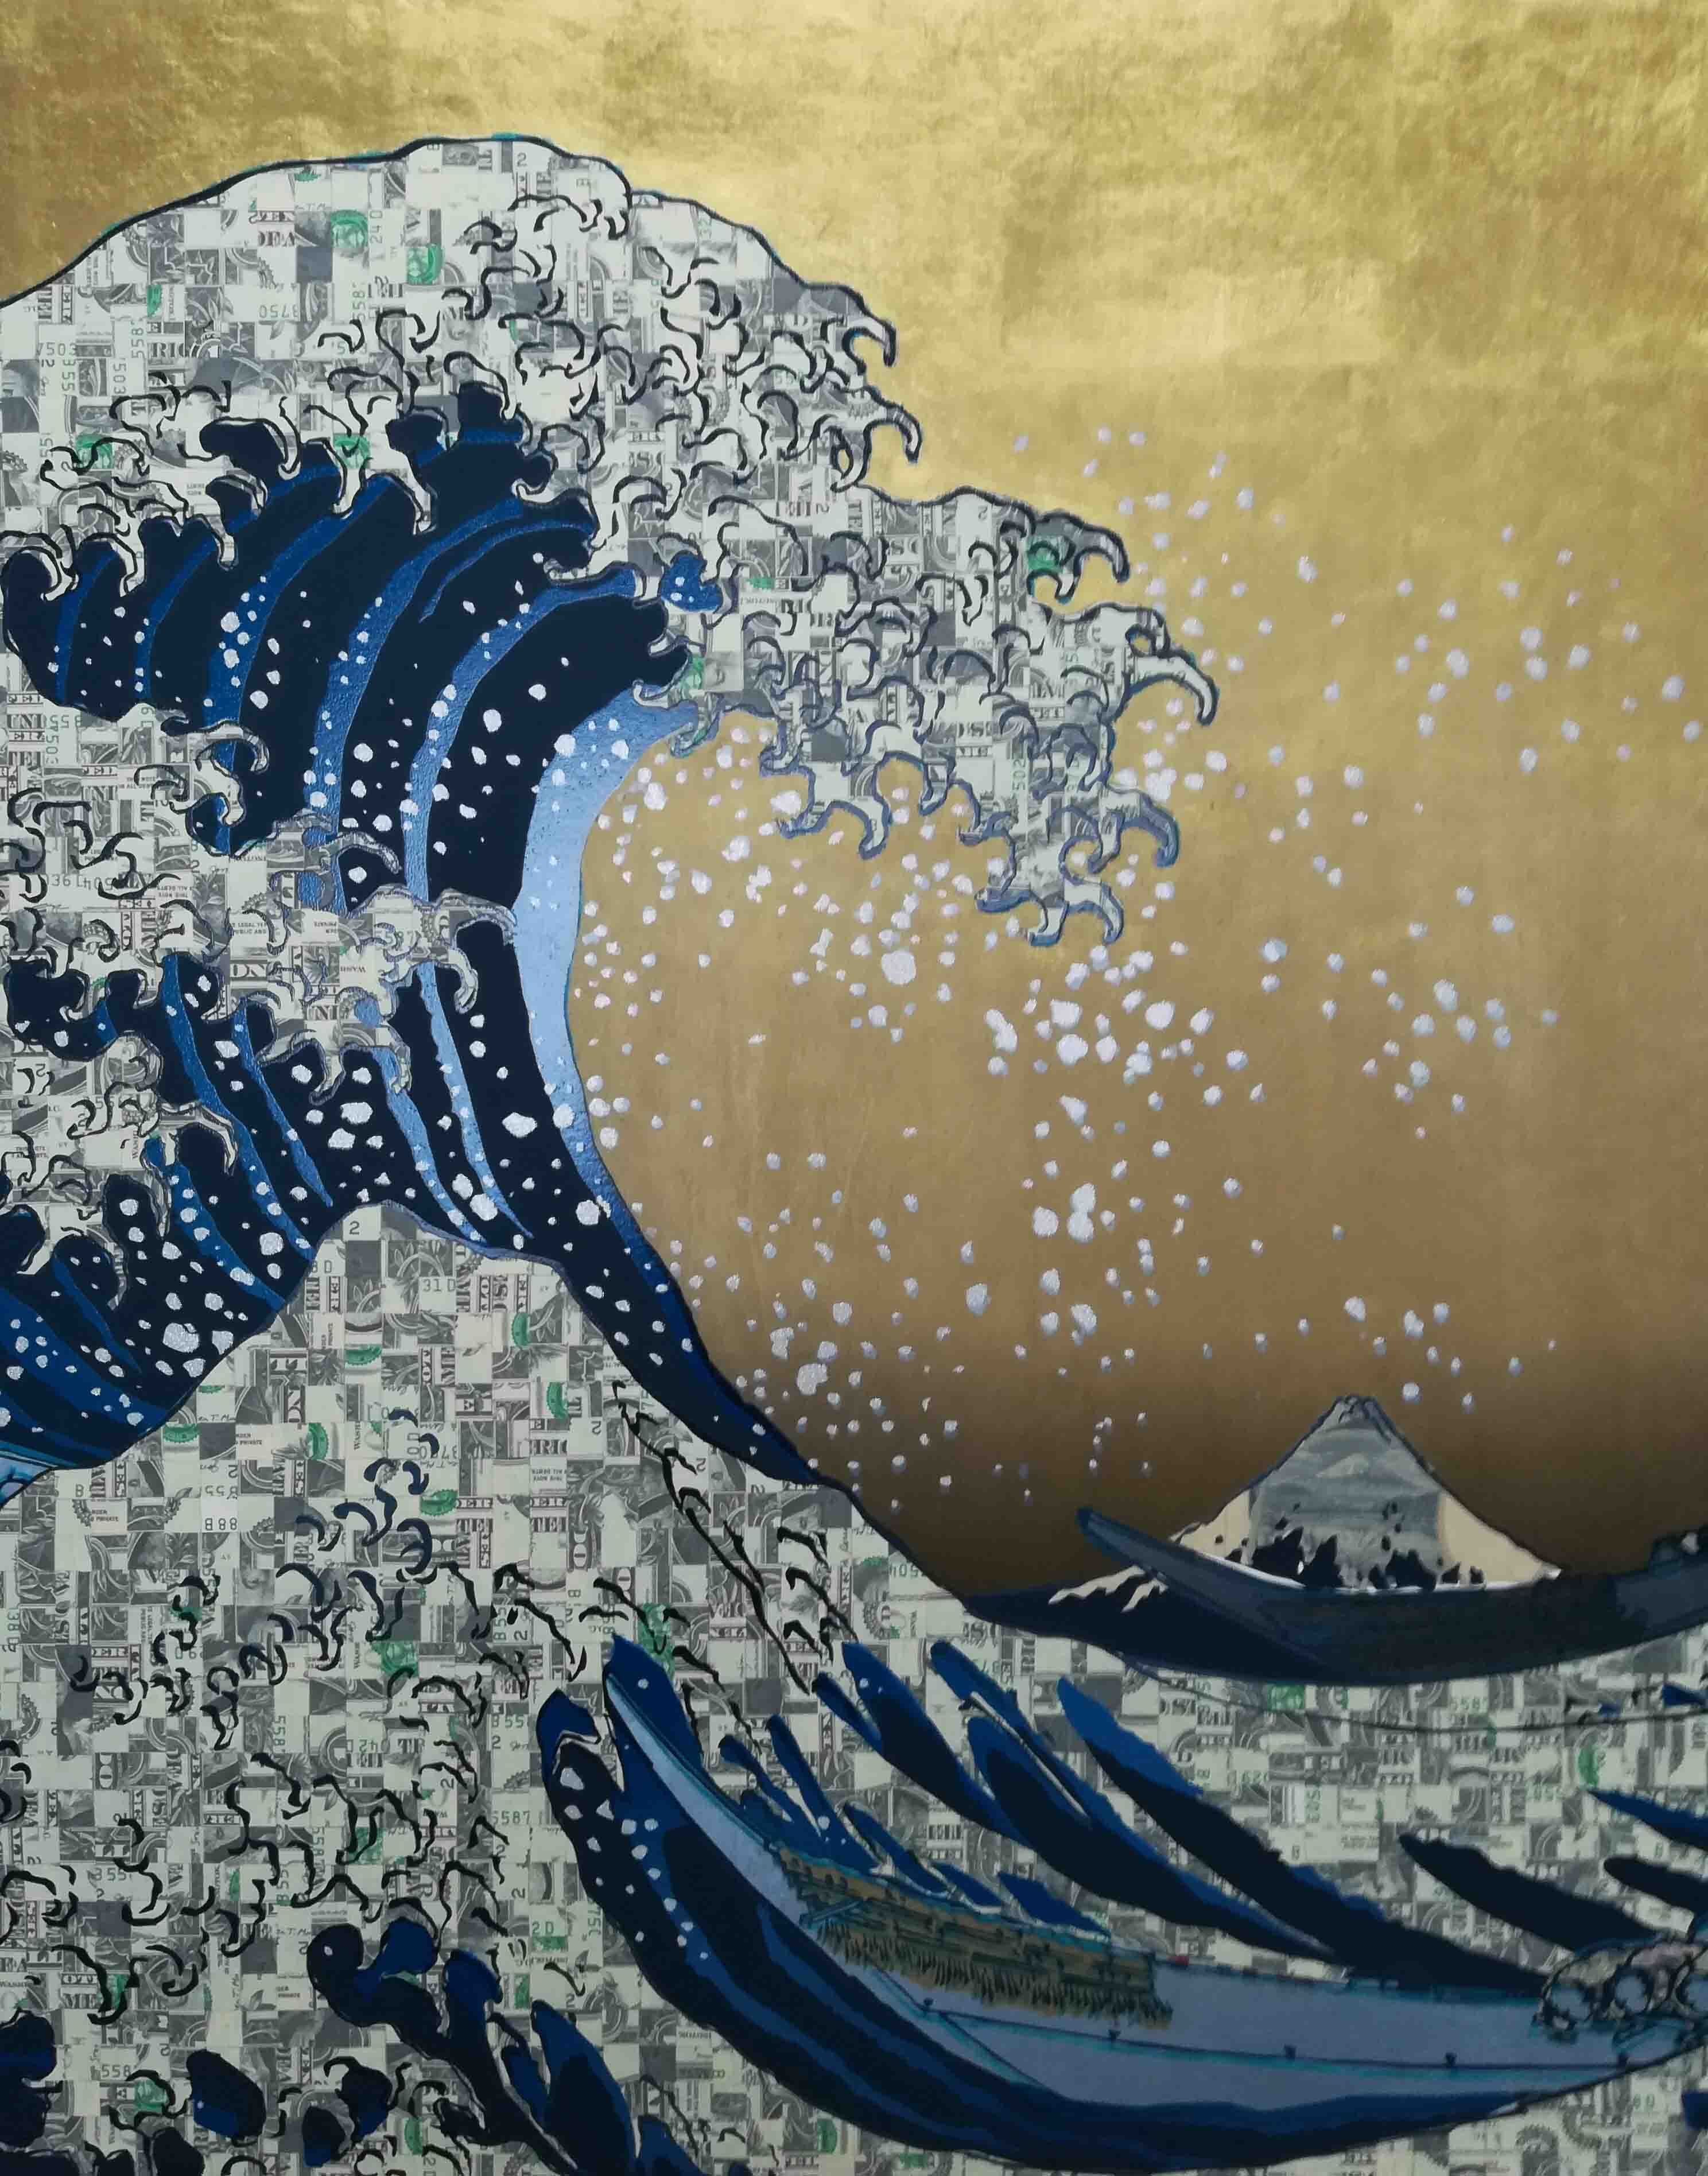 RealcamoAutomaticWAVE Prussianblue Gold sky silver splash $Camouflage